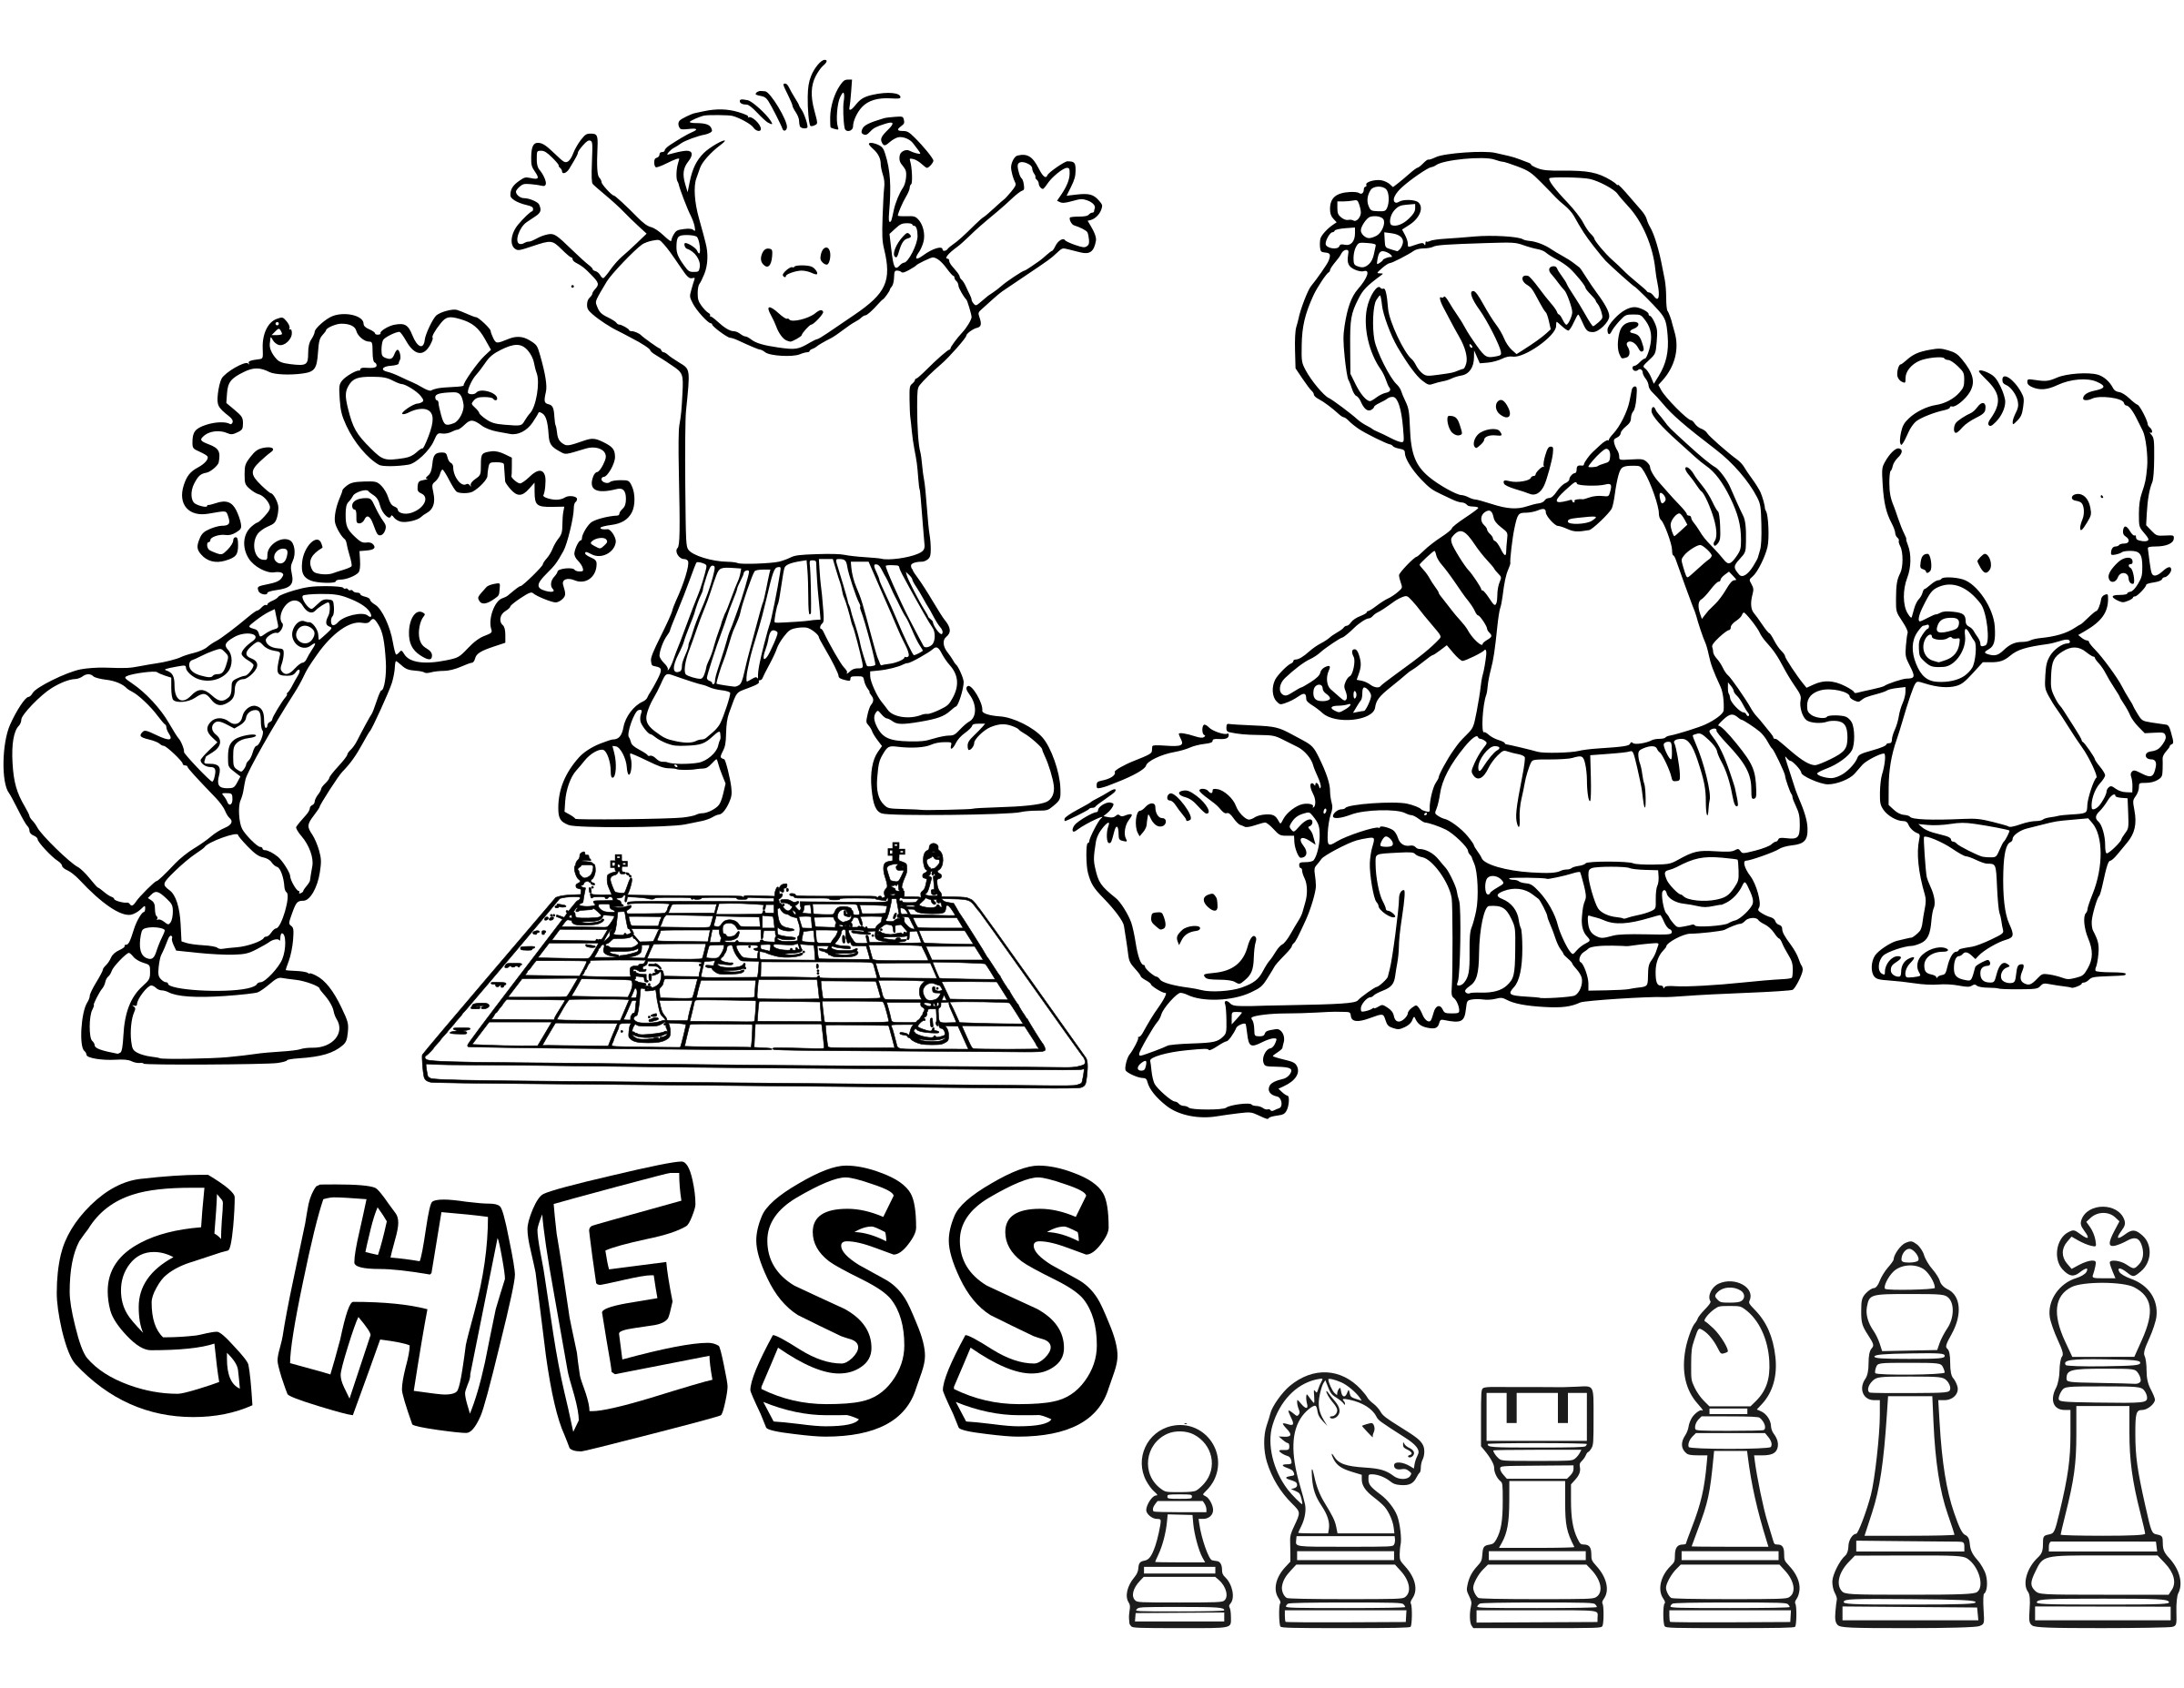 Chess coloring book  / Dibujo Ajedrez para colorear -16- by DG-RA